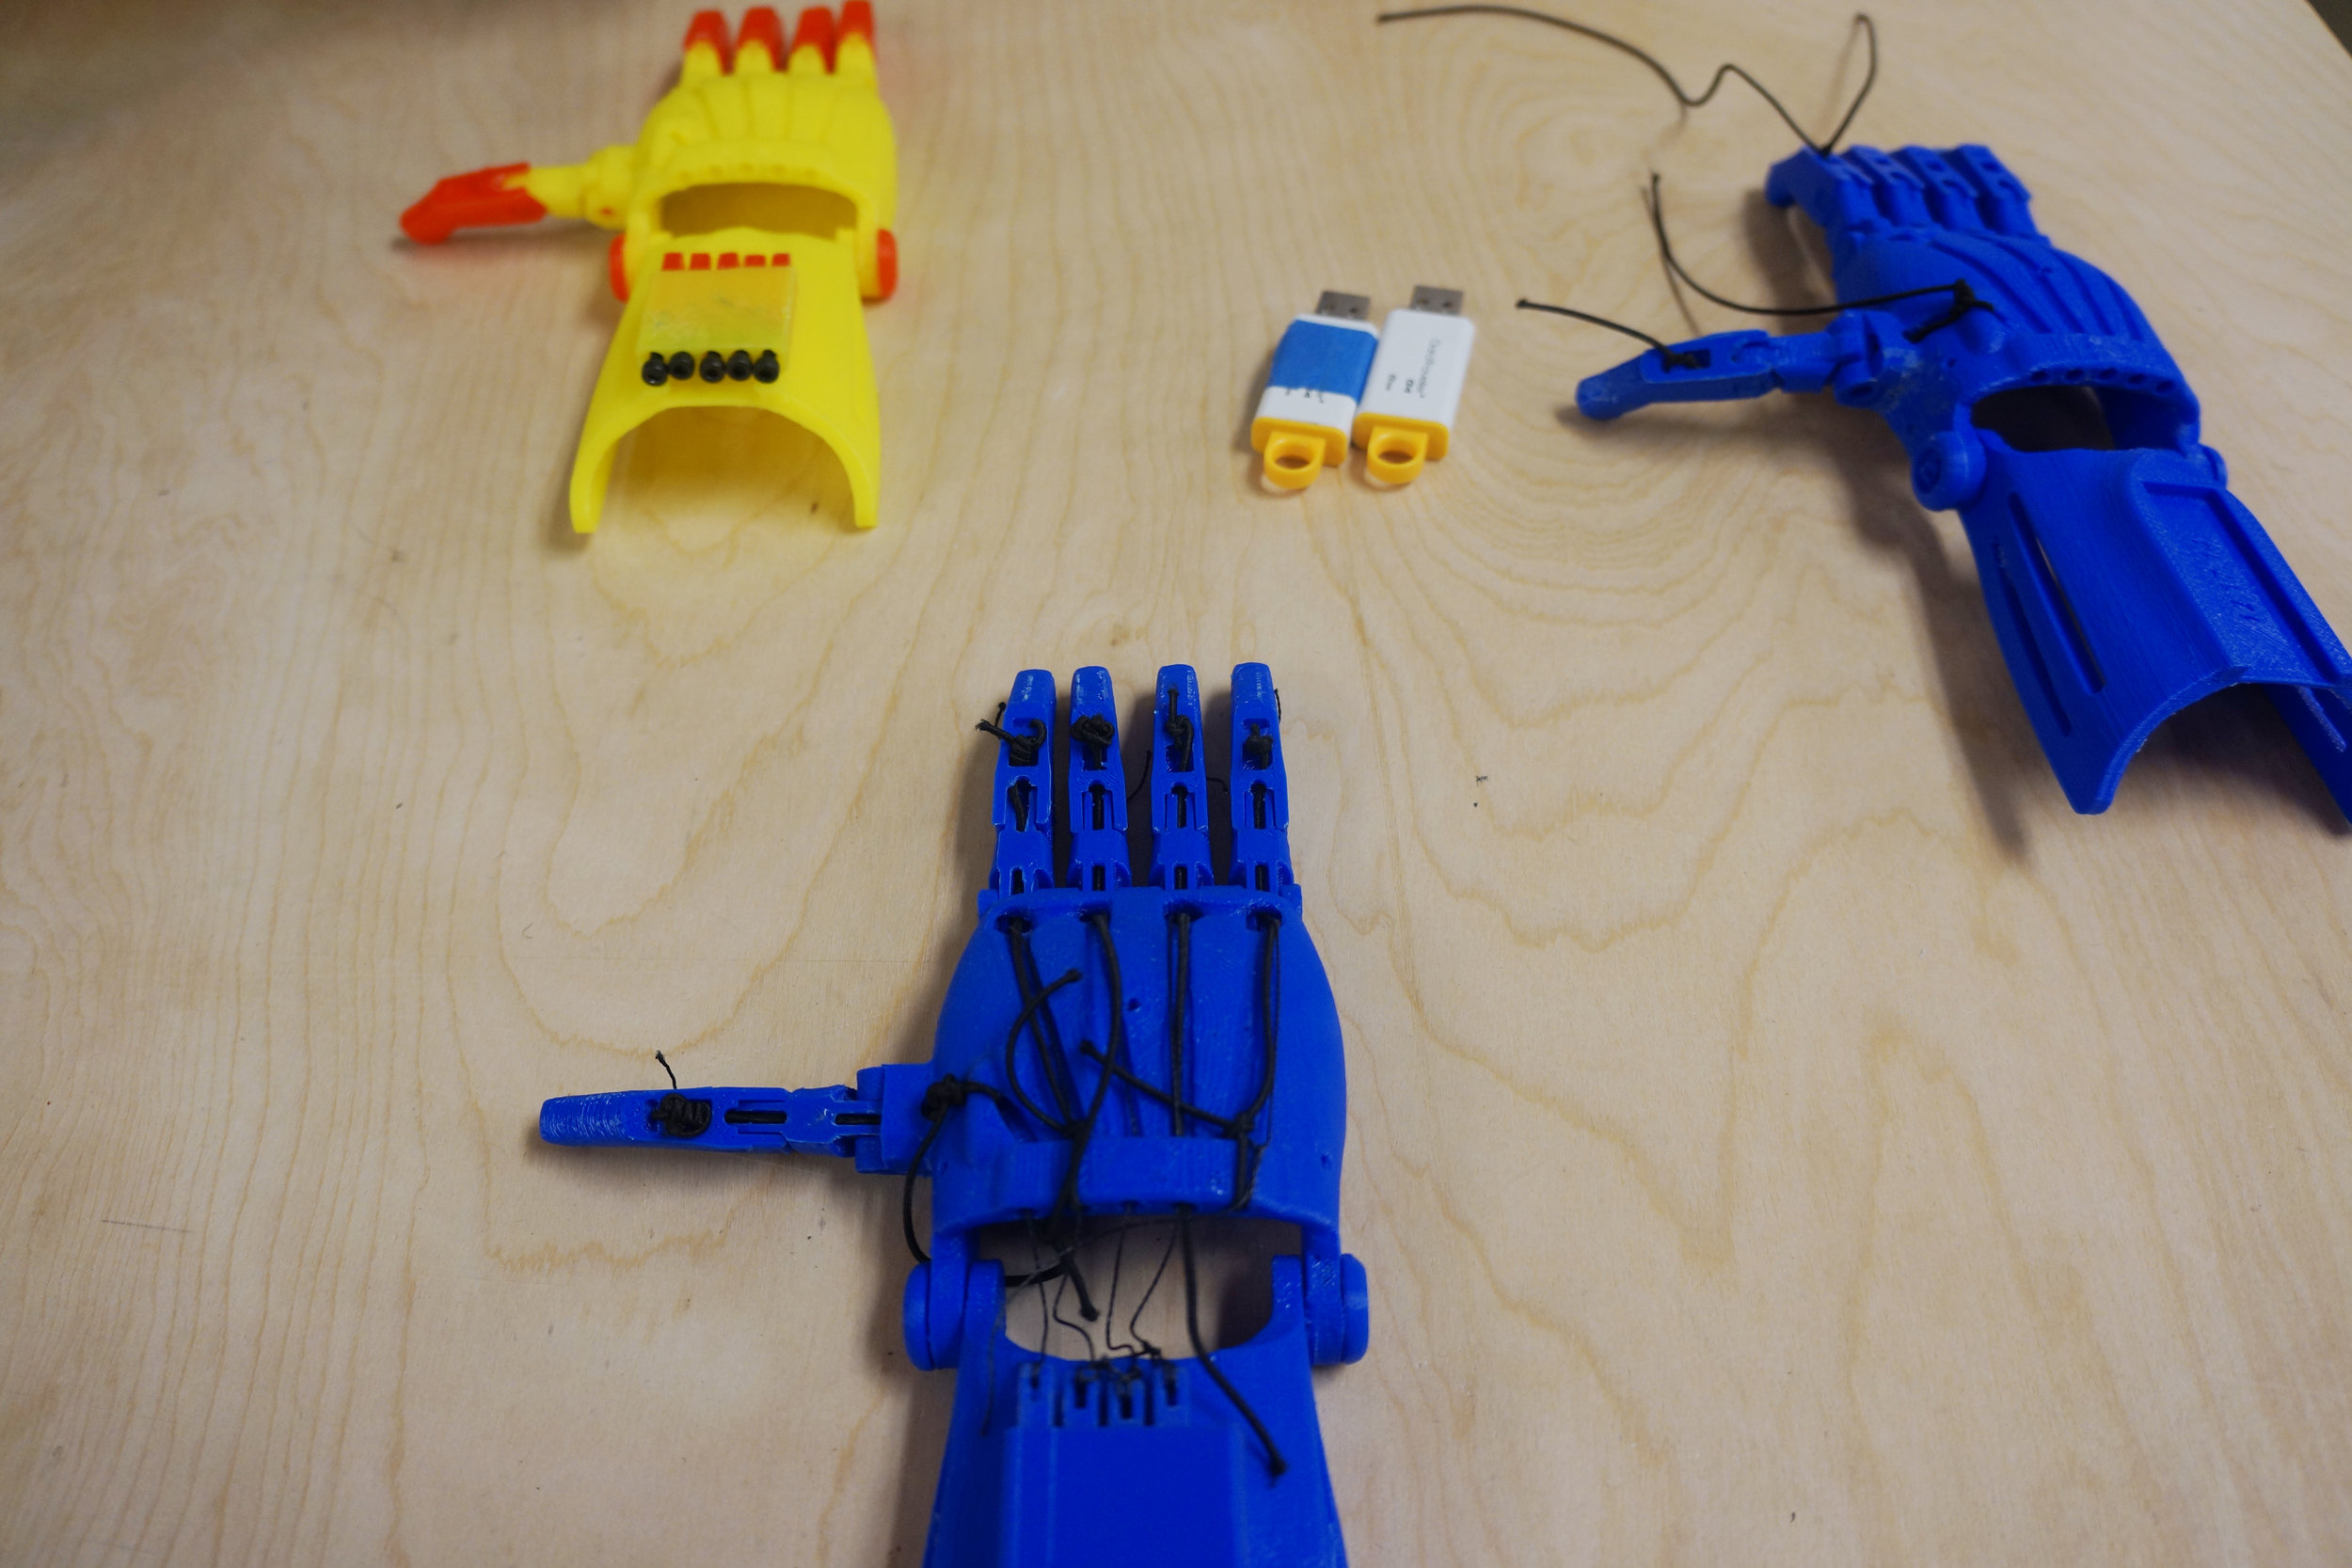 Prosthetic hands 3-d printed